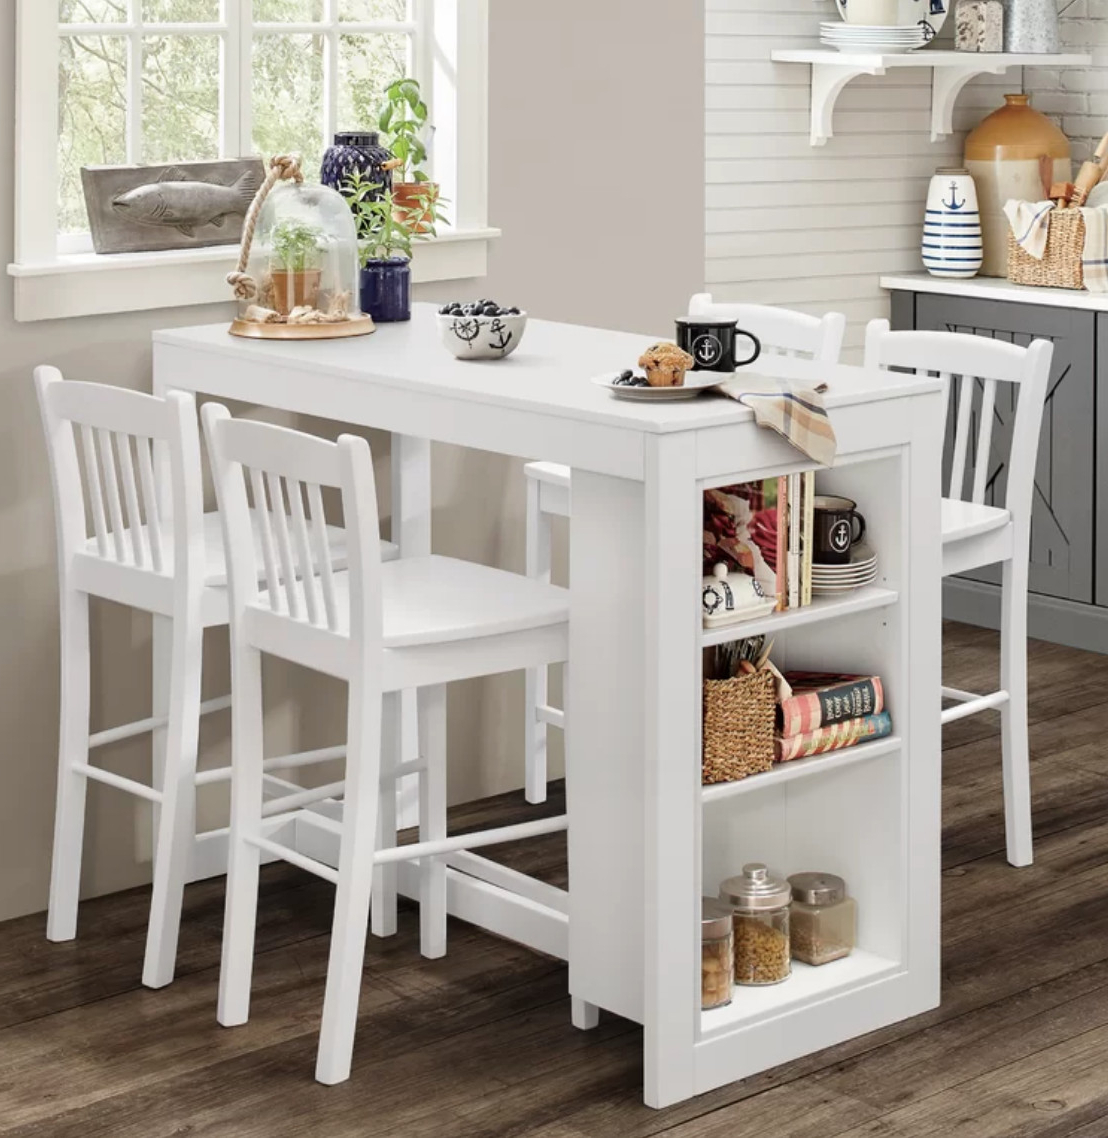 Dining Tables For Small Spaces – Small Spaces – Lonny In Preferred Taulbee 5 Piece Dining Sets (View 5 of 20)